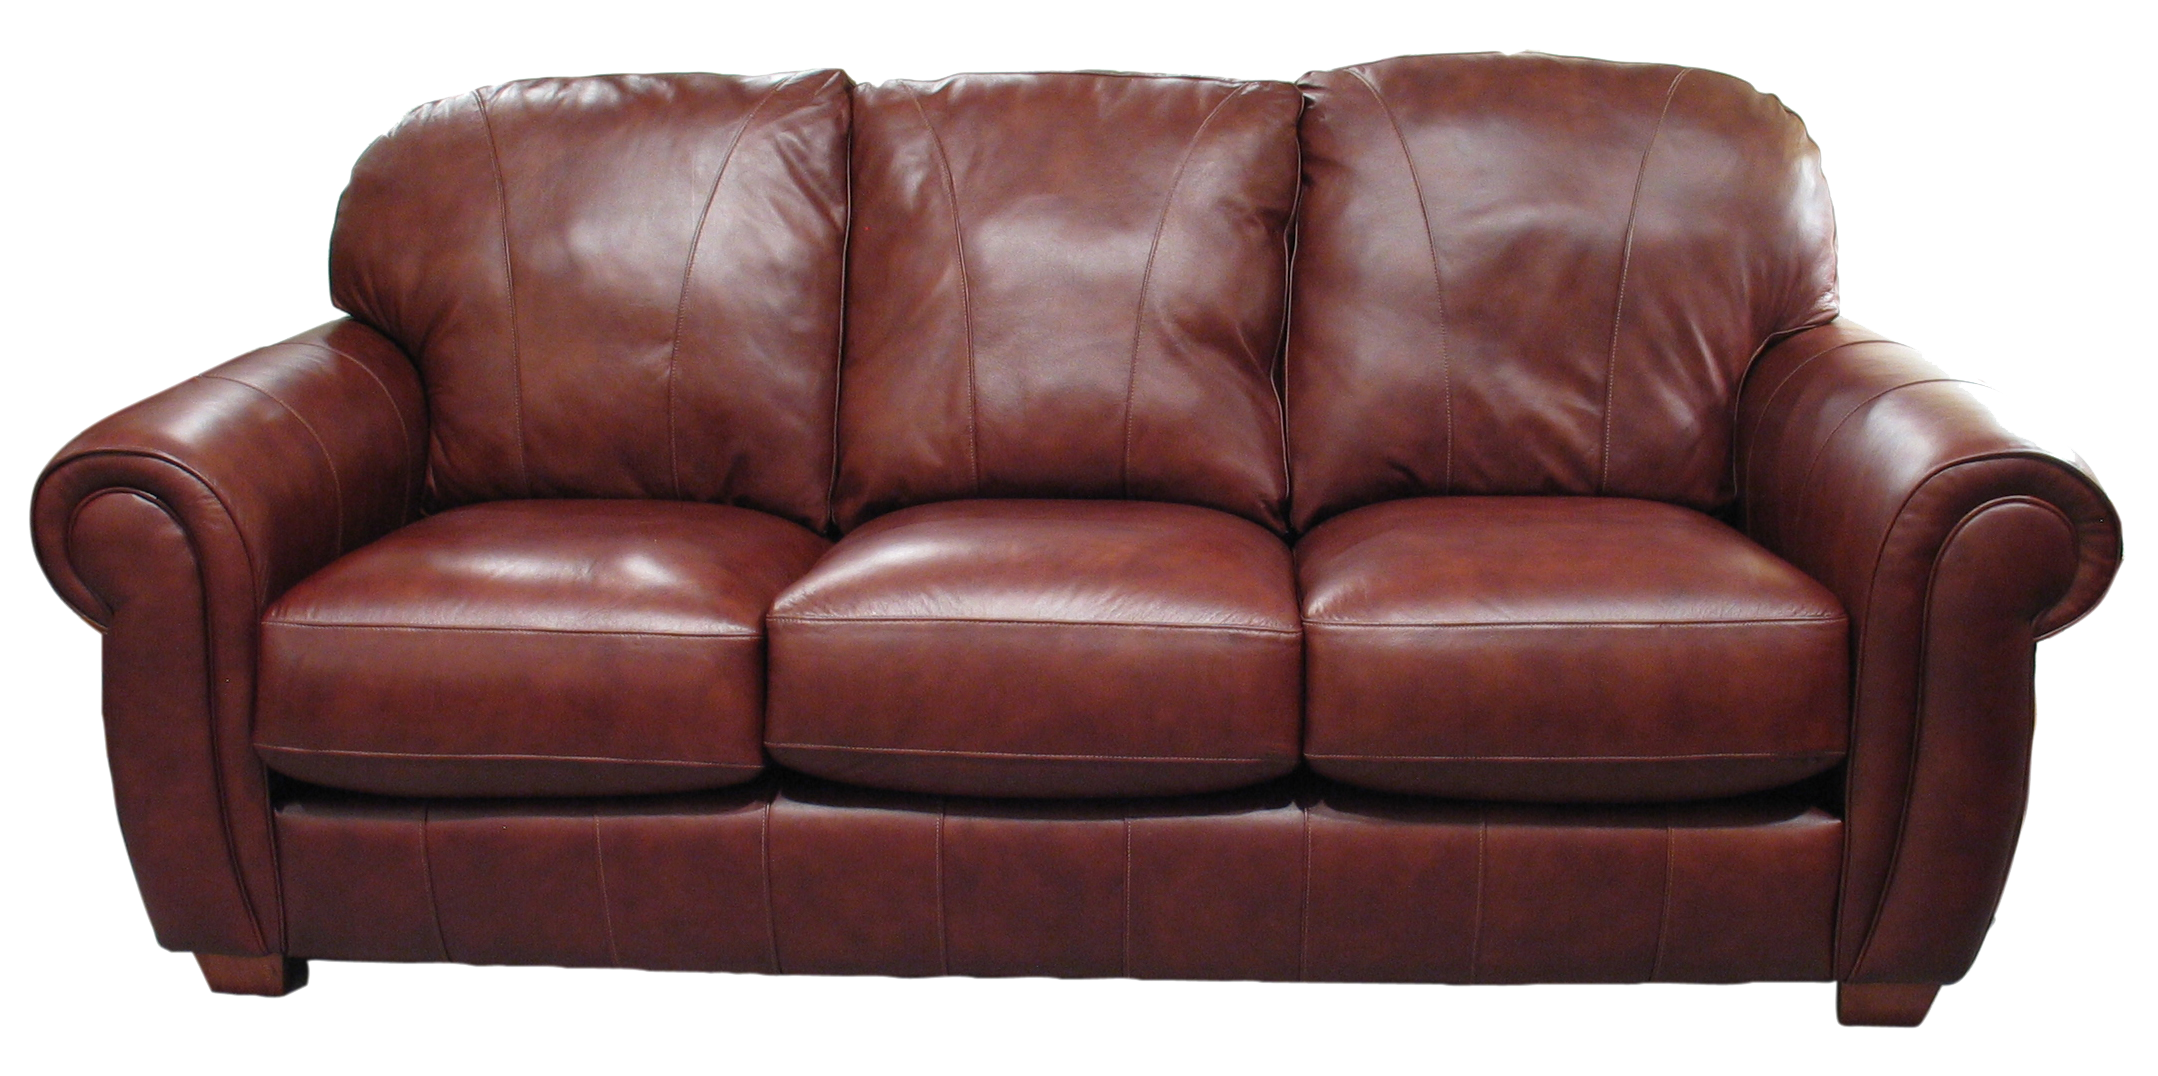 Brown sofa PNG image - Sofa HD PNG